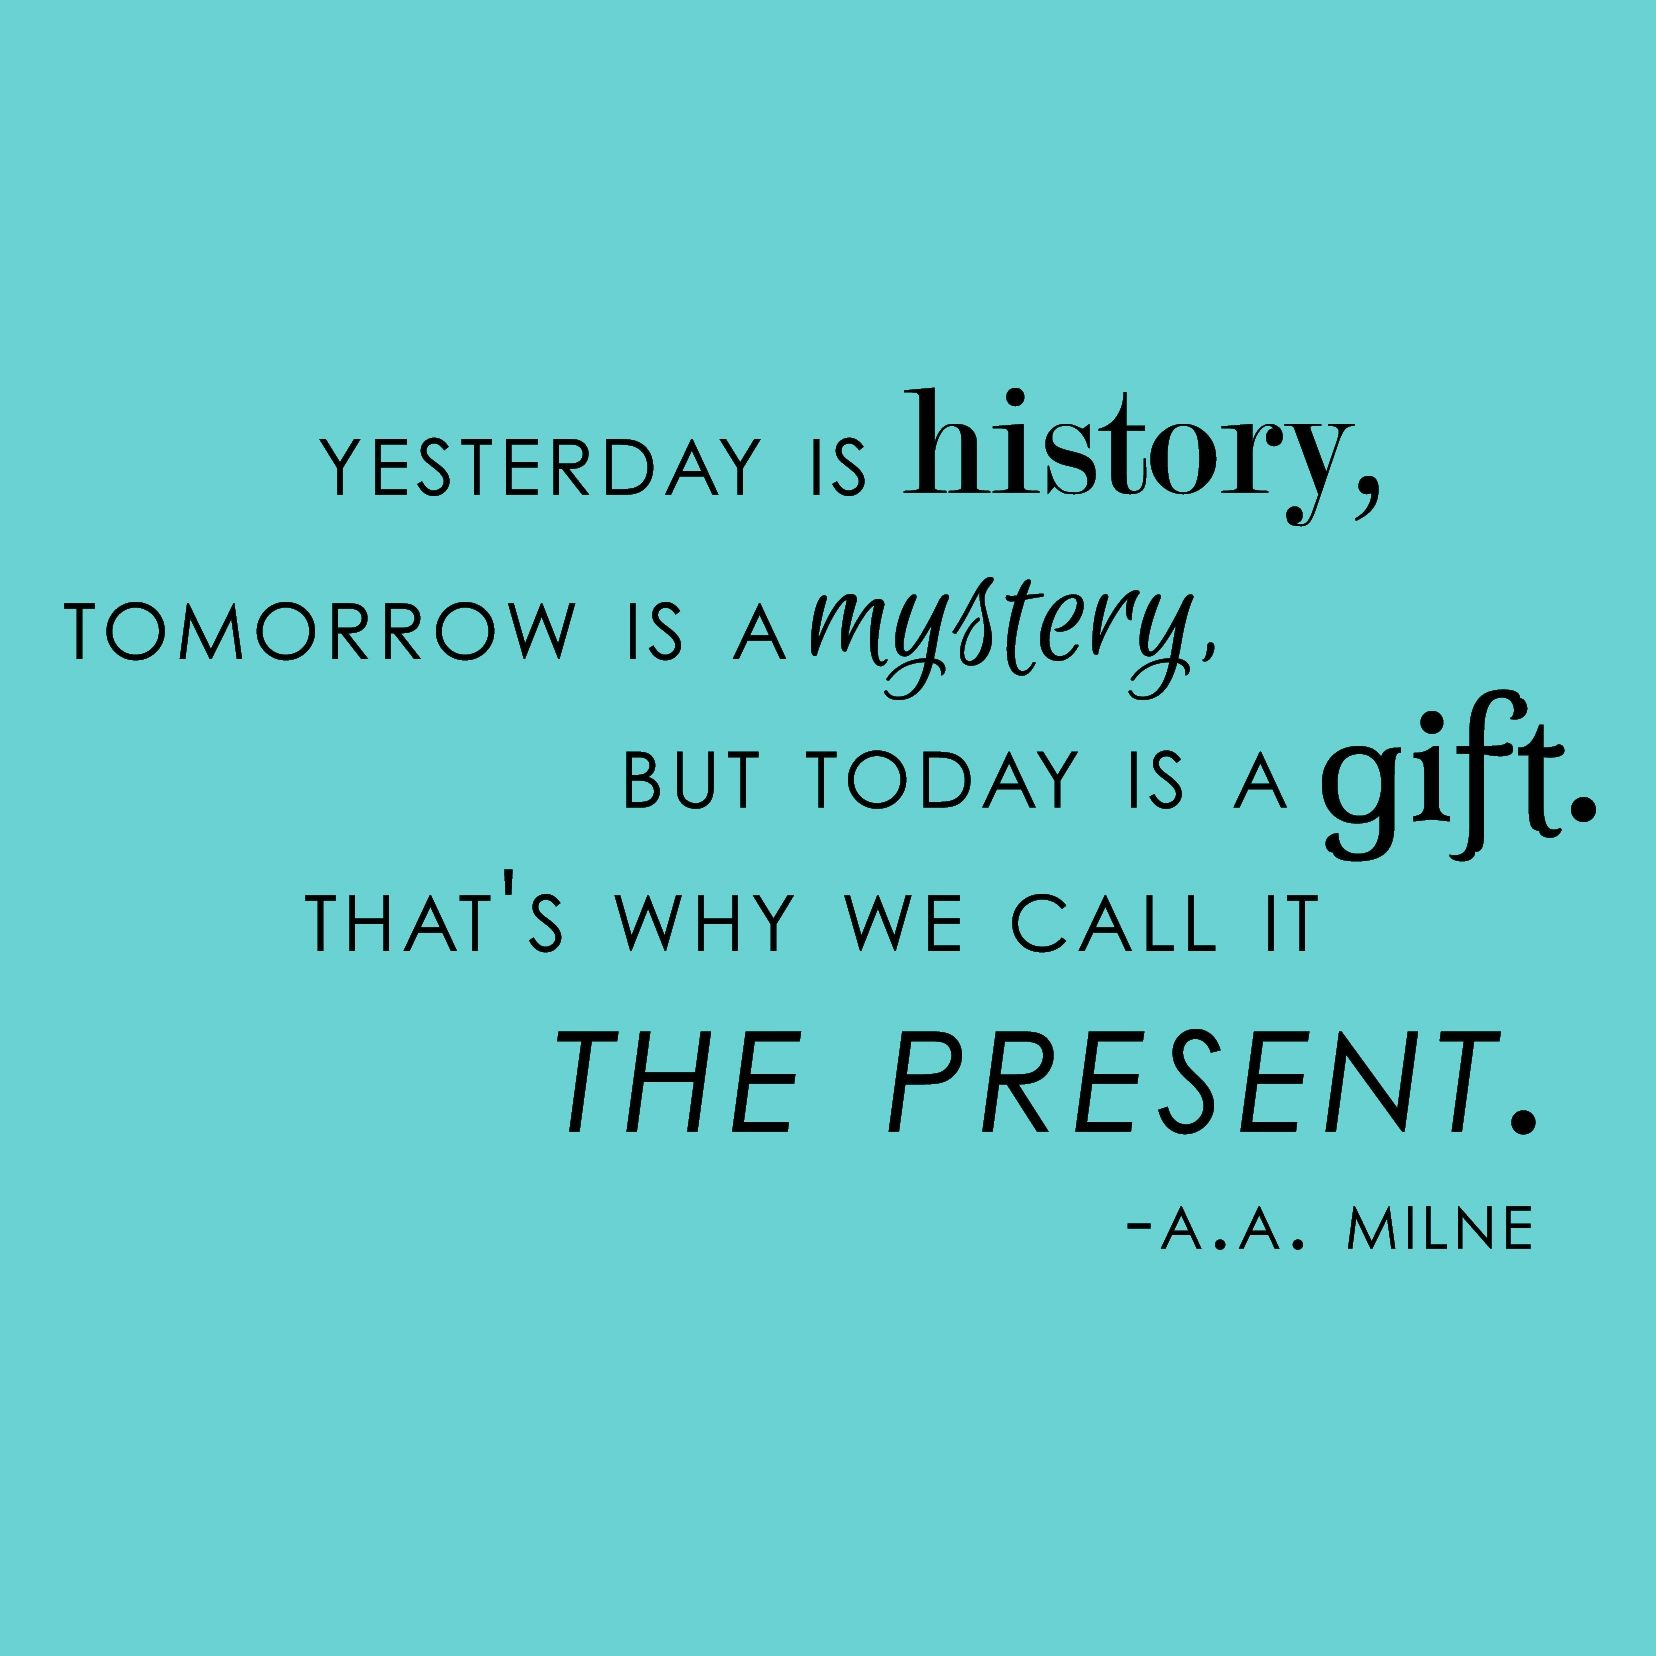 Aa Quote Adorable A.amilne Quote  Pinterest  Mystery History And Searching